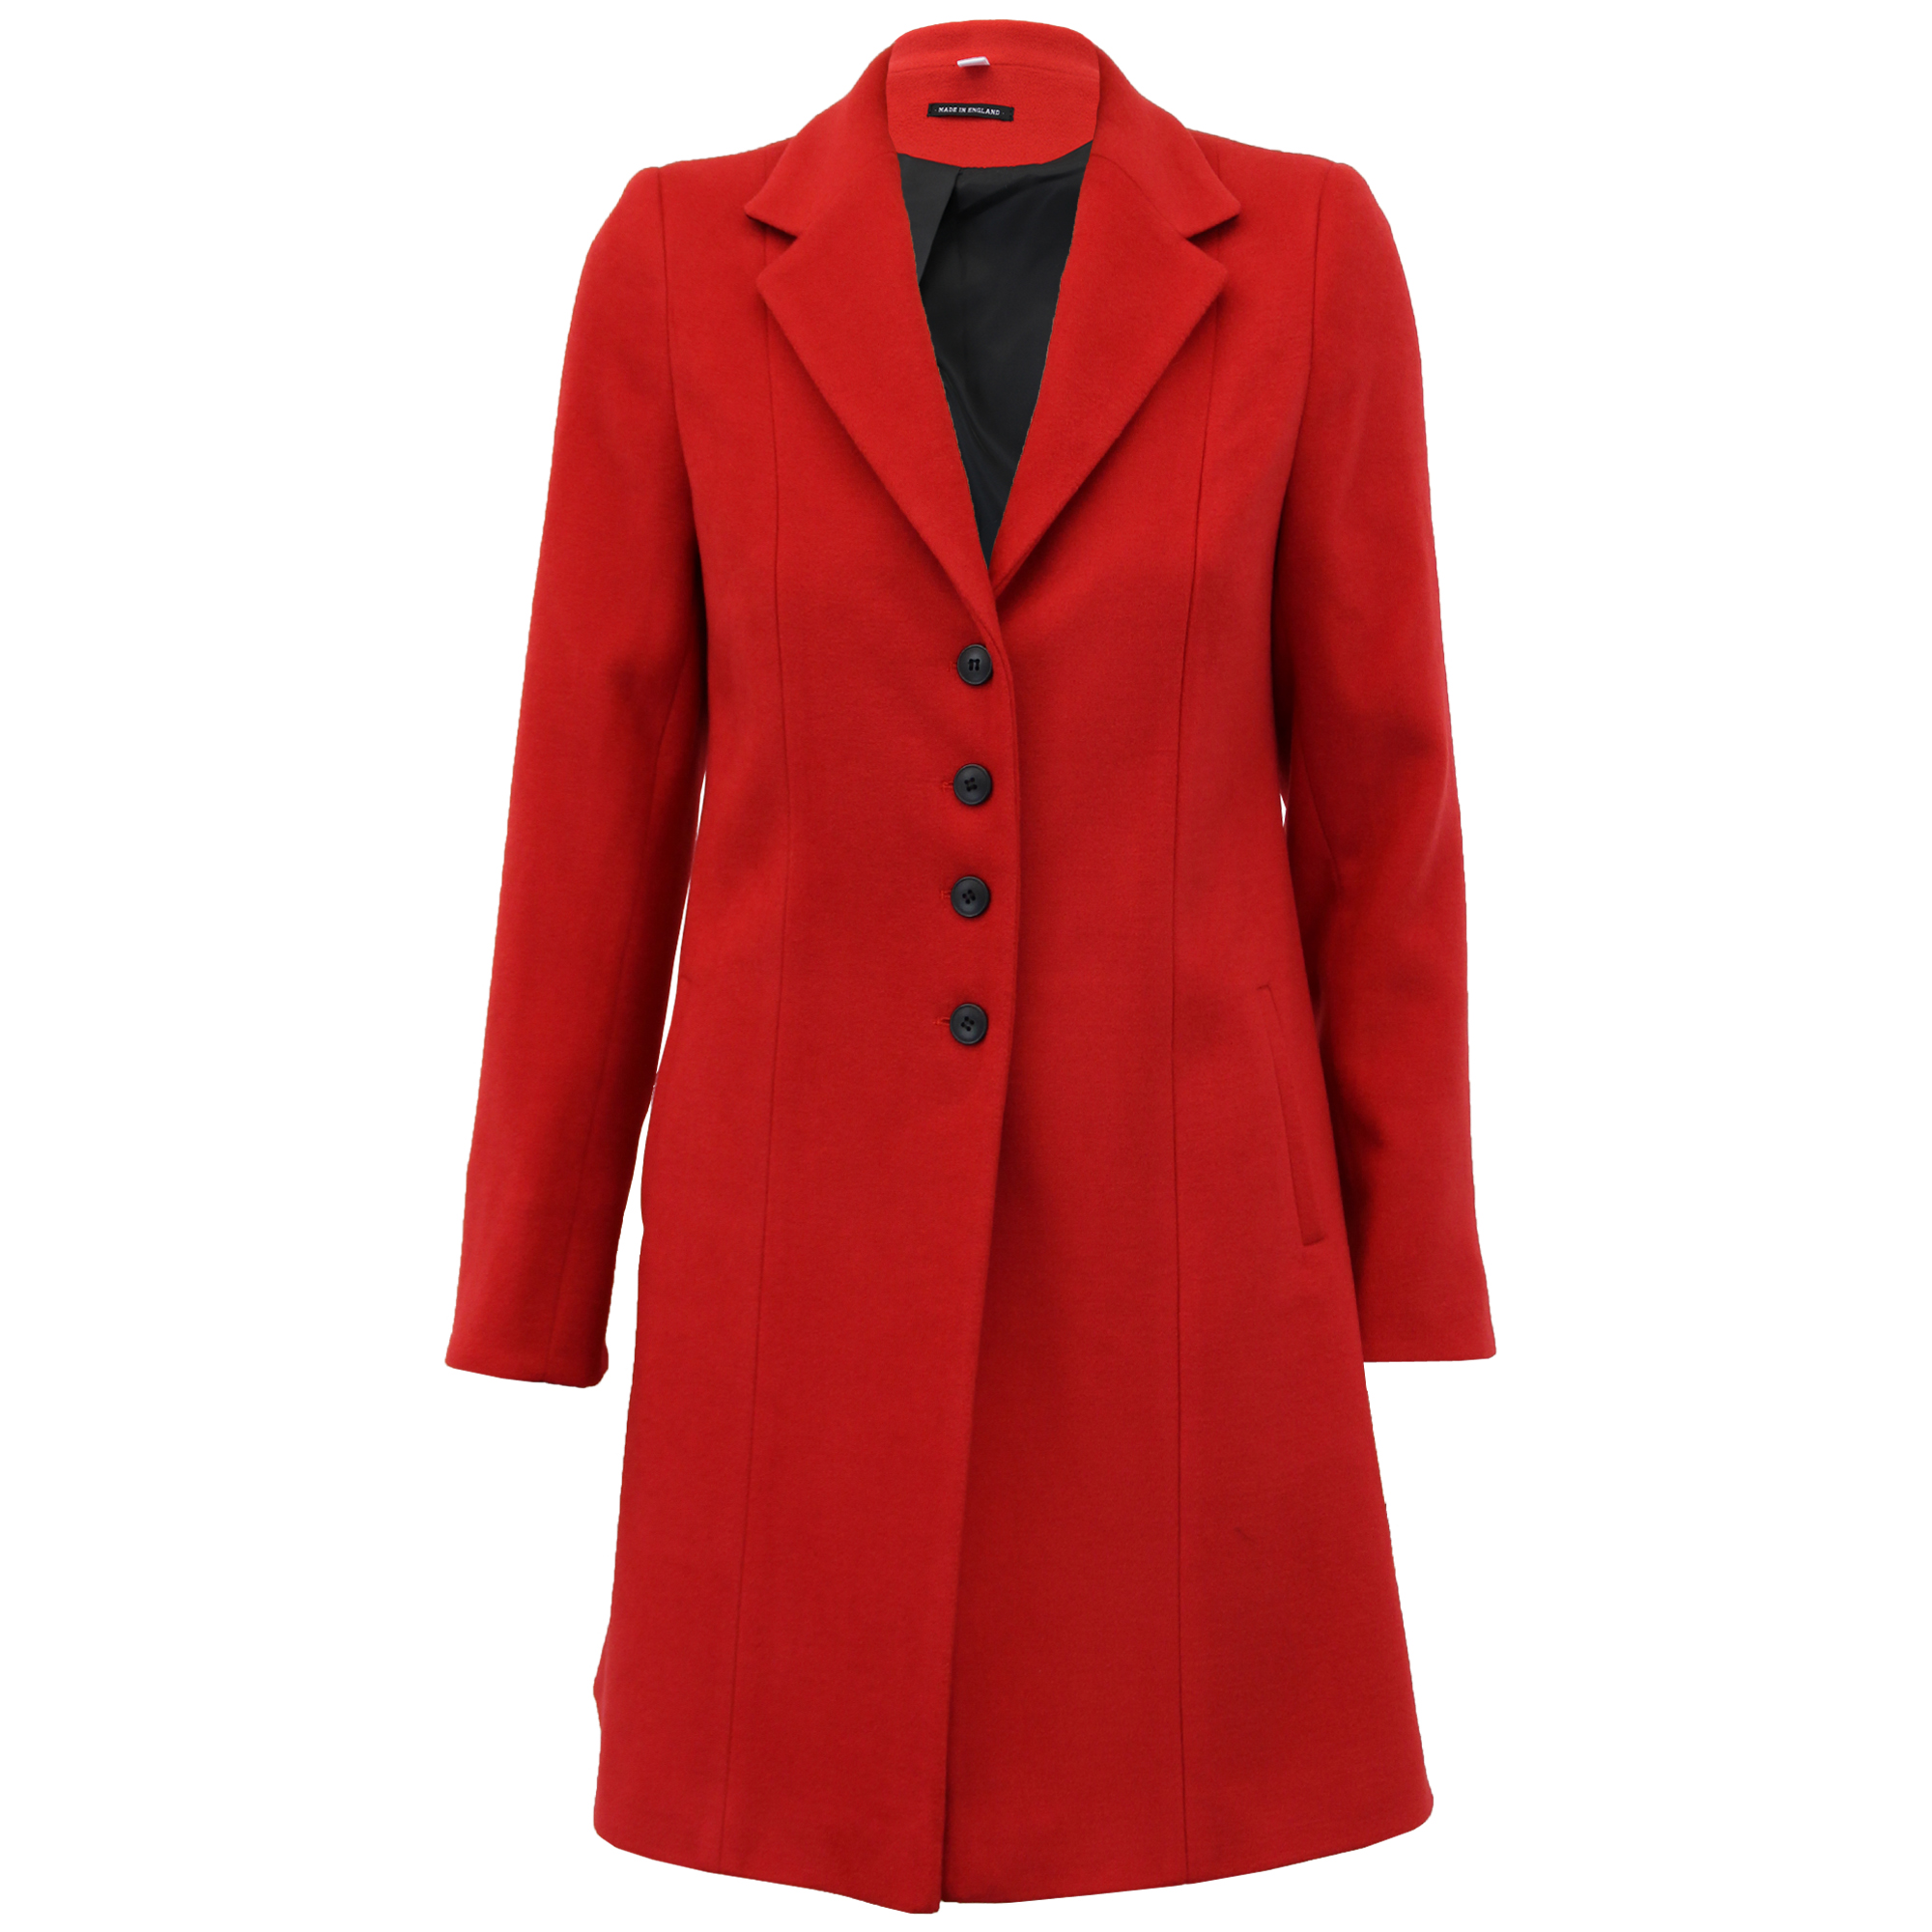 Women's Coats from newbez.ml Whether you're upgrading an old favorite or are preparing for colder weather, women's coats from newbez.ml will keep you warm and protected from the elements without sacrificing style for function.